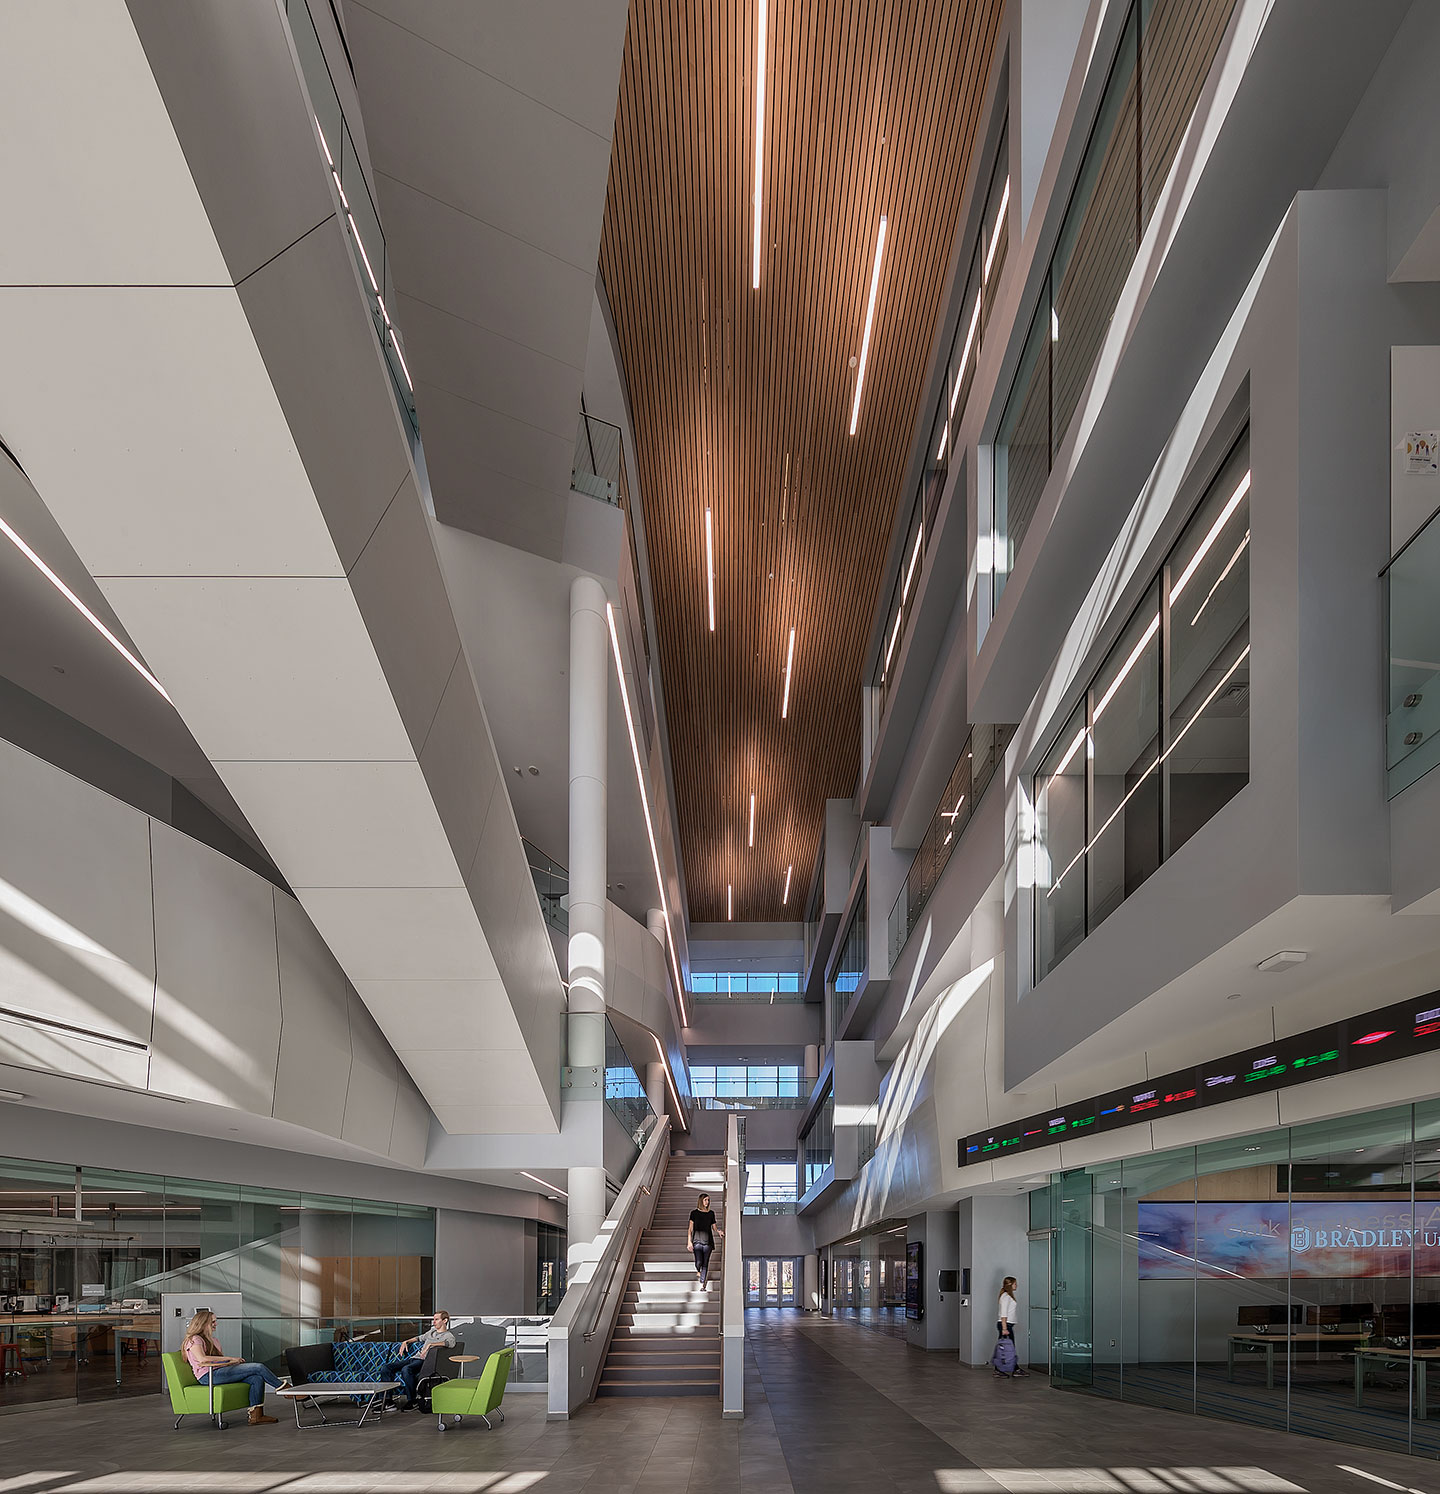 Designed using a modern interpretation of collegiate gothic architecture, the 390,000-SF facility includes more than 60 classrooms, three auditoriums, social space for students and faculty, breakout rooms, conference space, and a café.